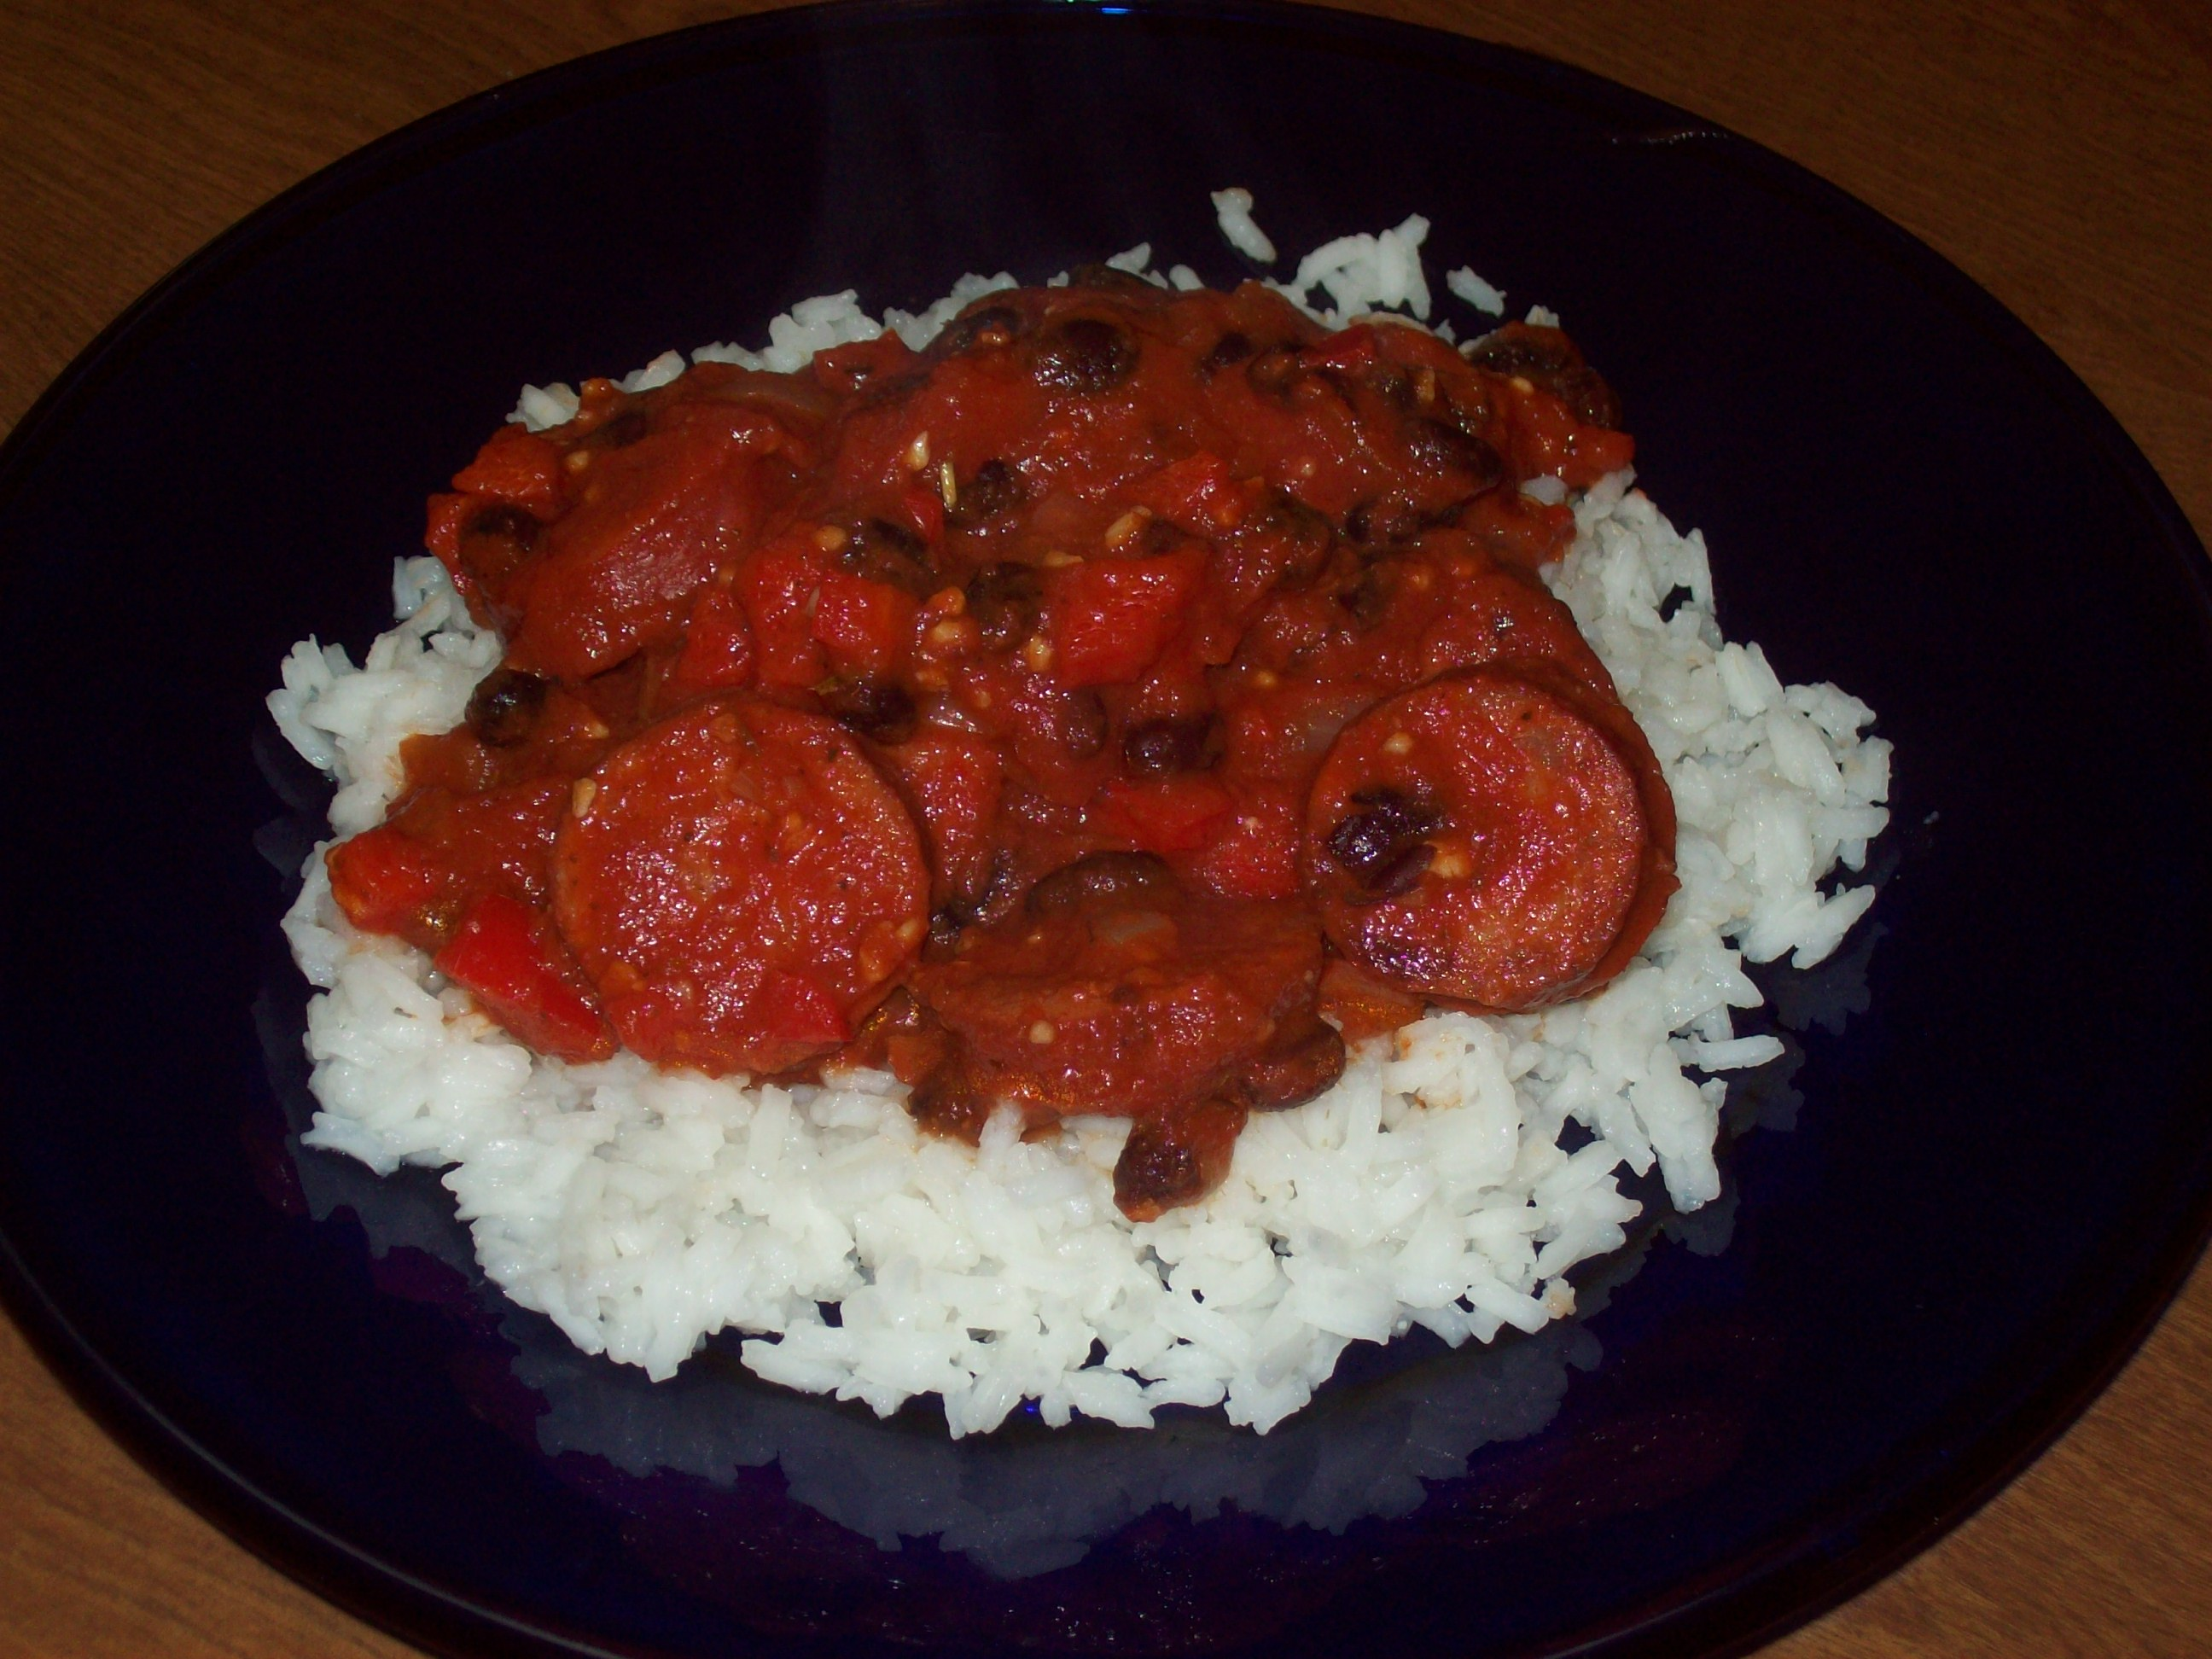 Portuguese Chourico, Beans, and Rice Chris Pinette